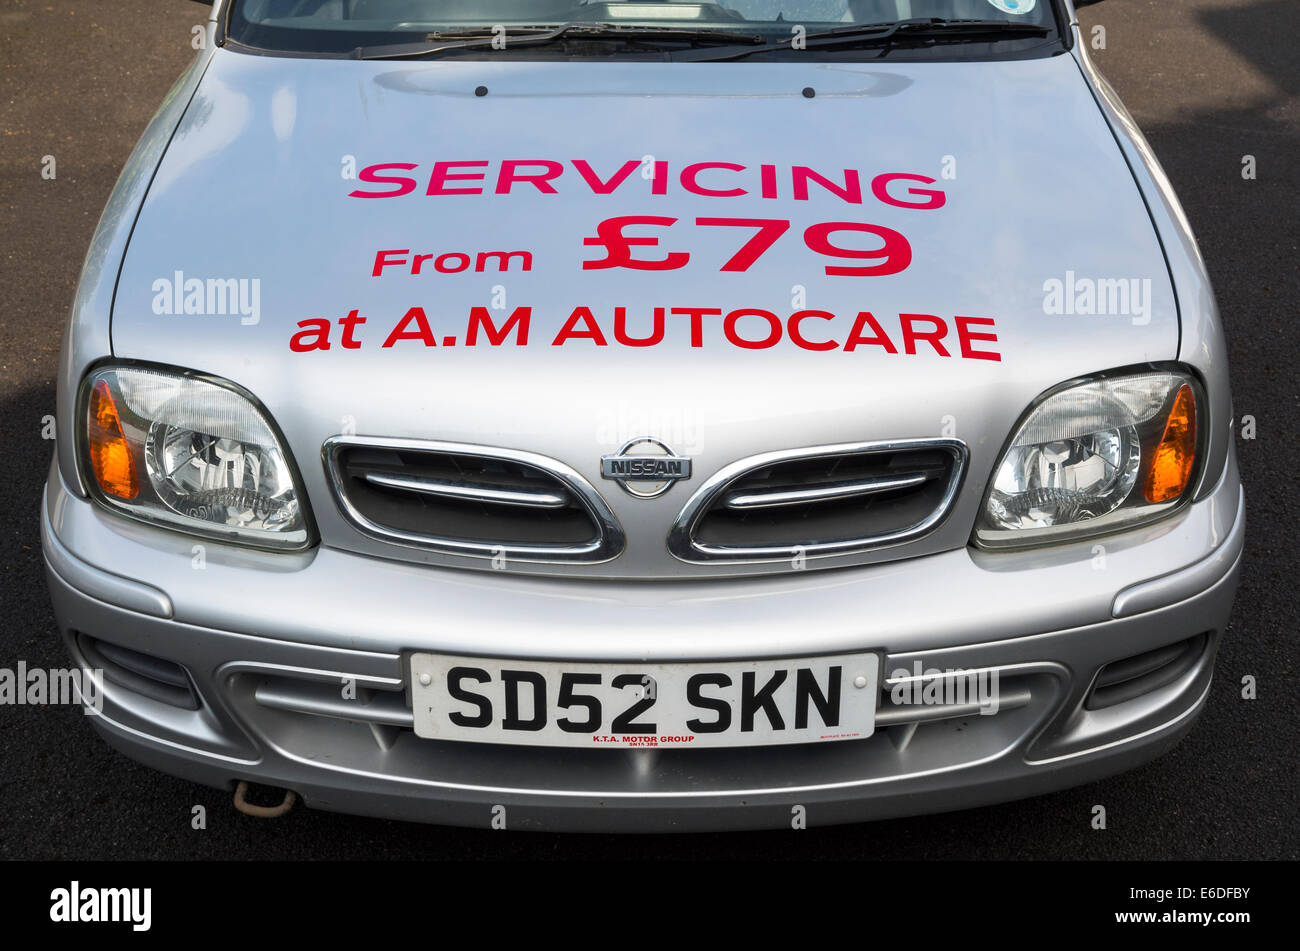 Car servicing promotion printed on loan car bonnet - Stock Image